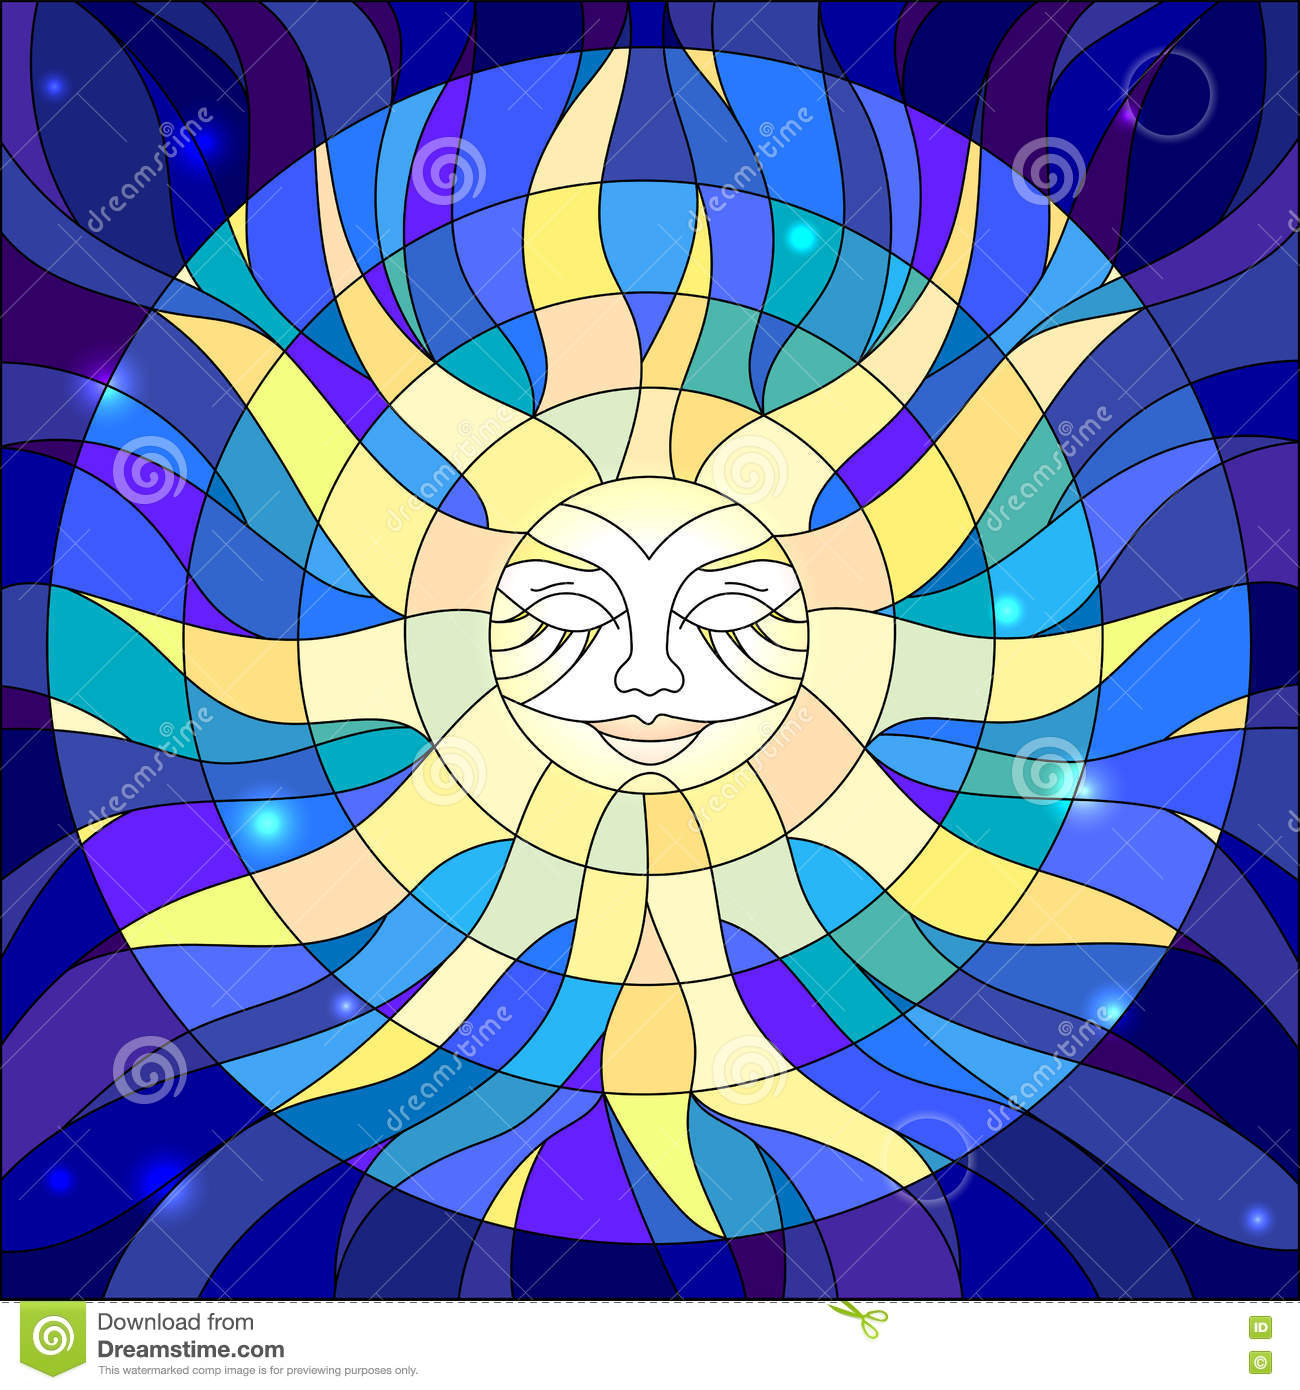 https://thumbs.dreamstime.com/z/illustration-stained-glass-style-abstract-star-window-77231537.jpg